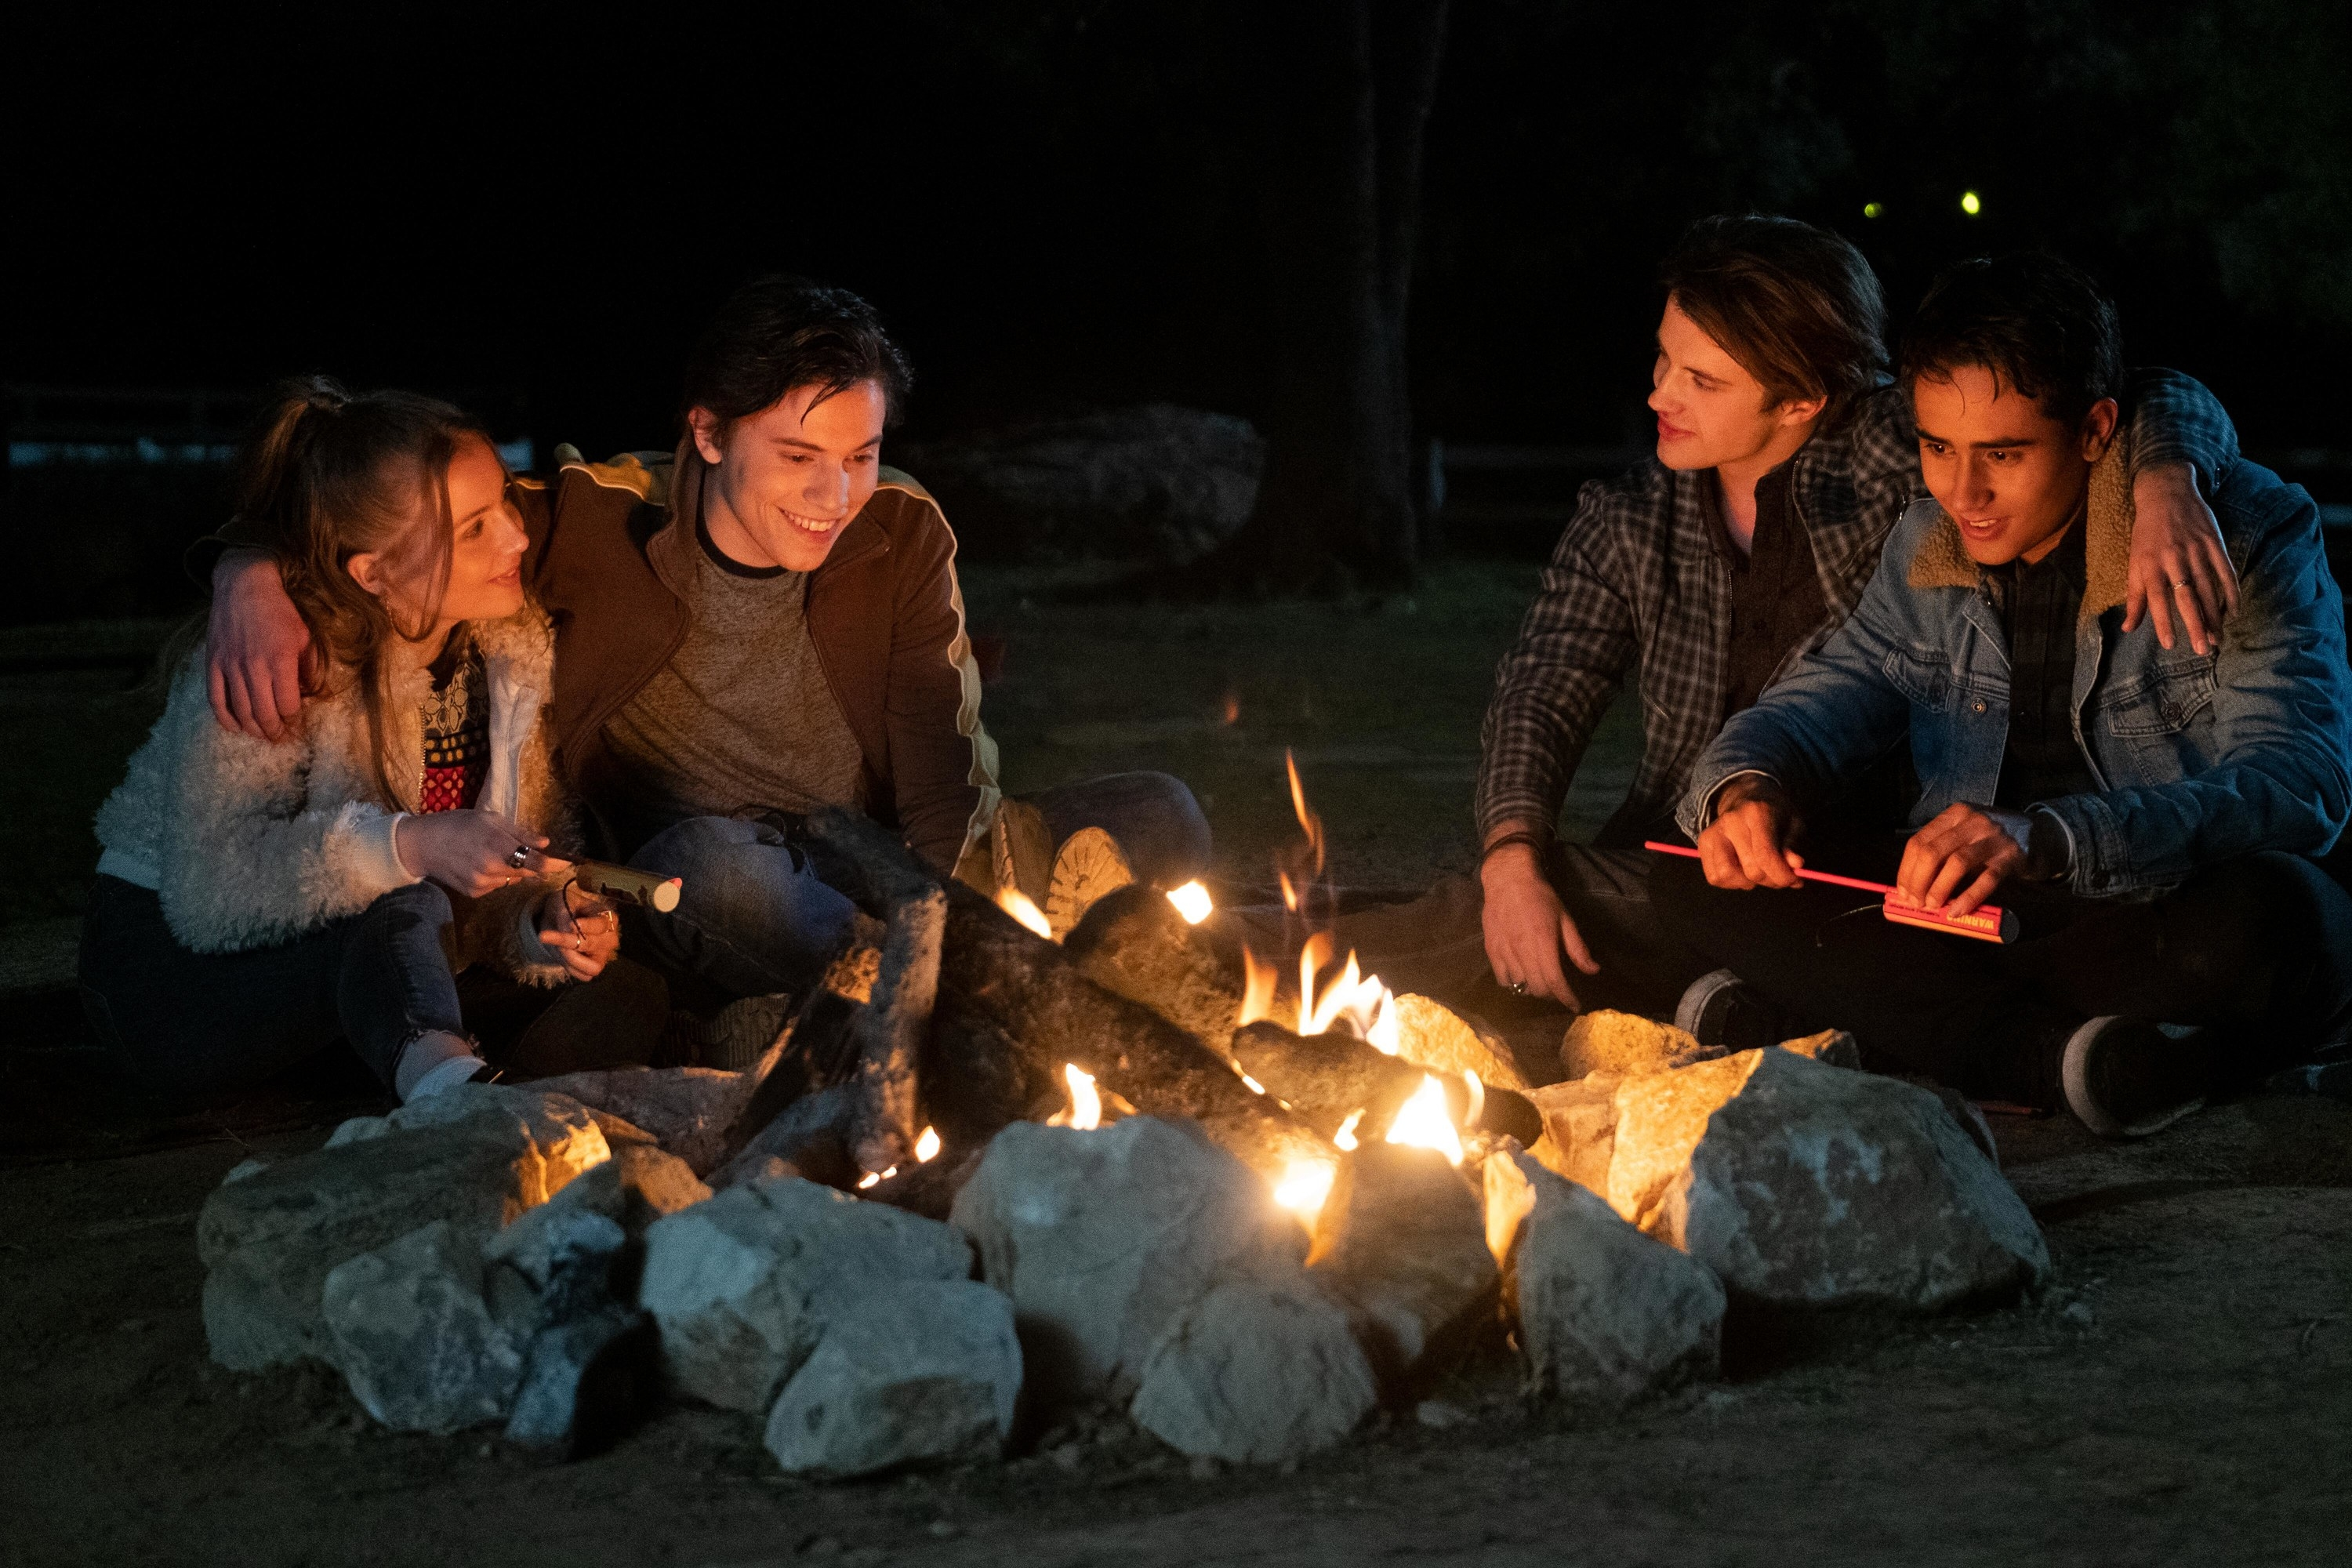 A scene with several members around a campfire